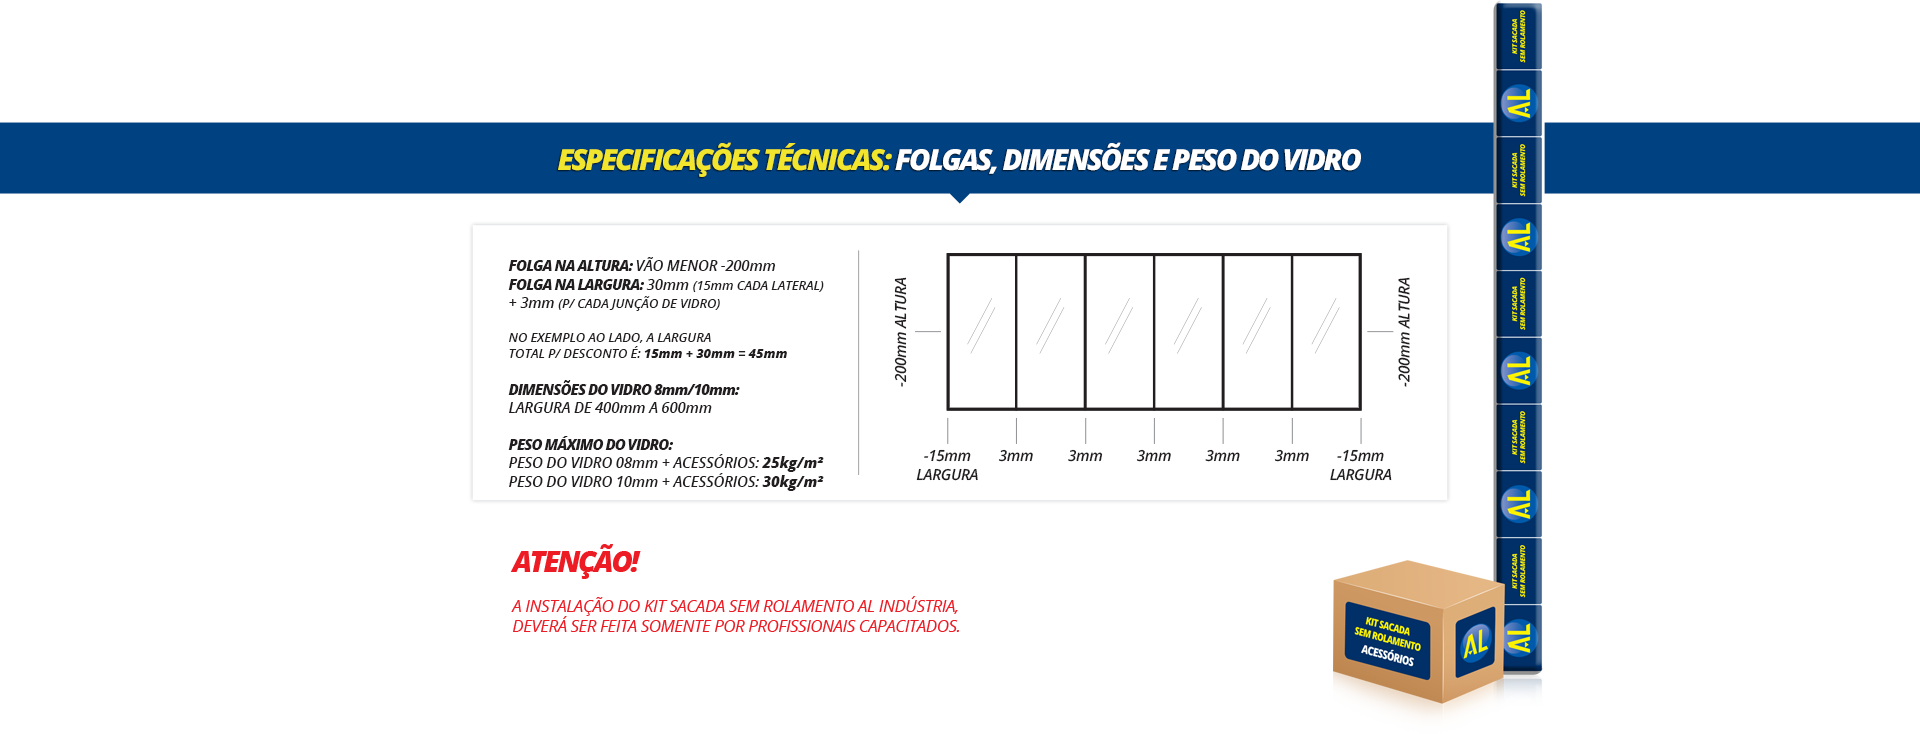 site-kit-sacada-especificacoes.png